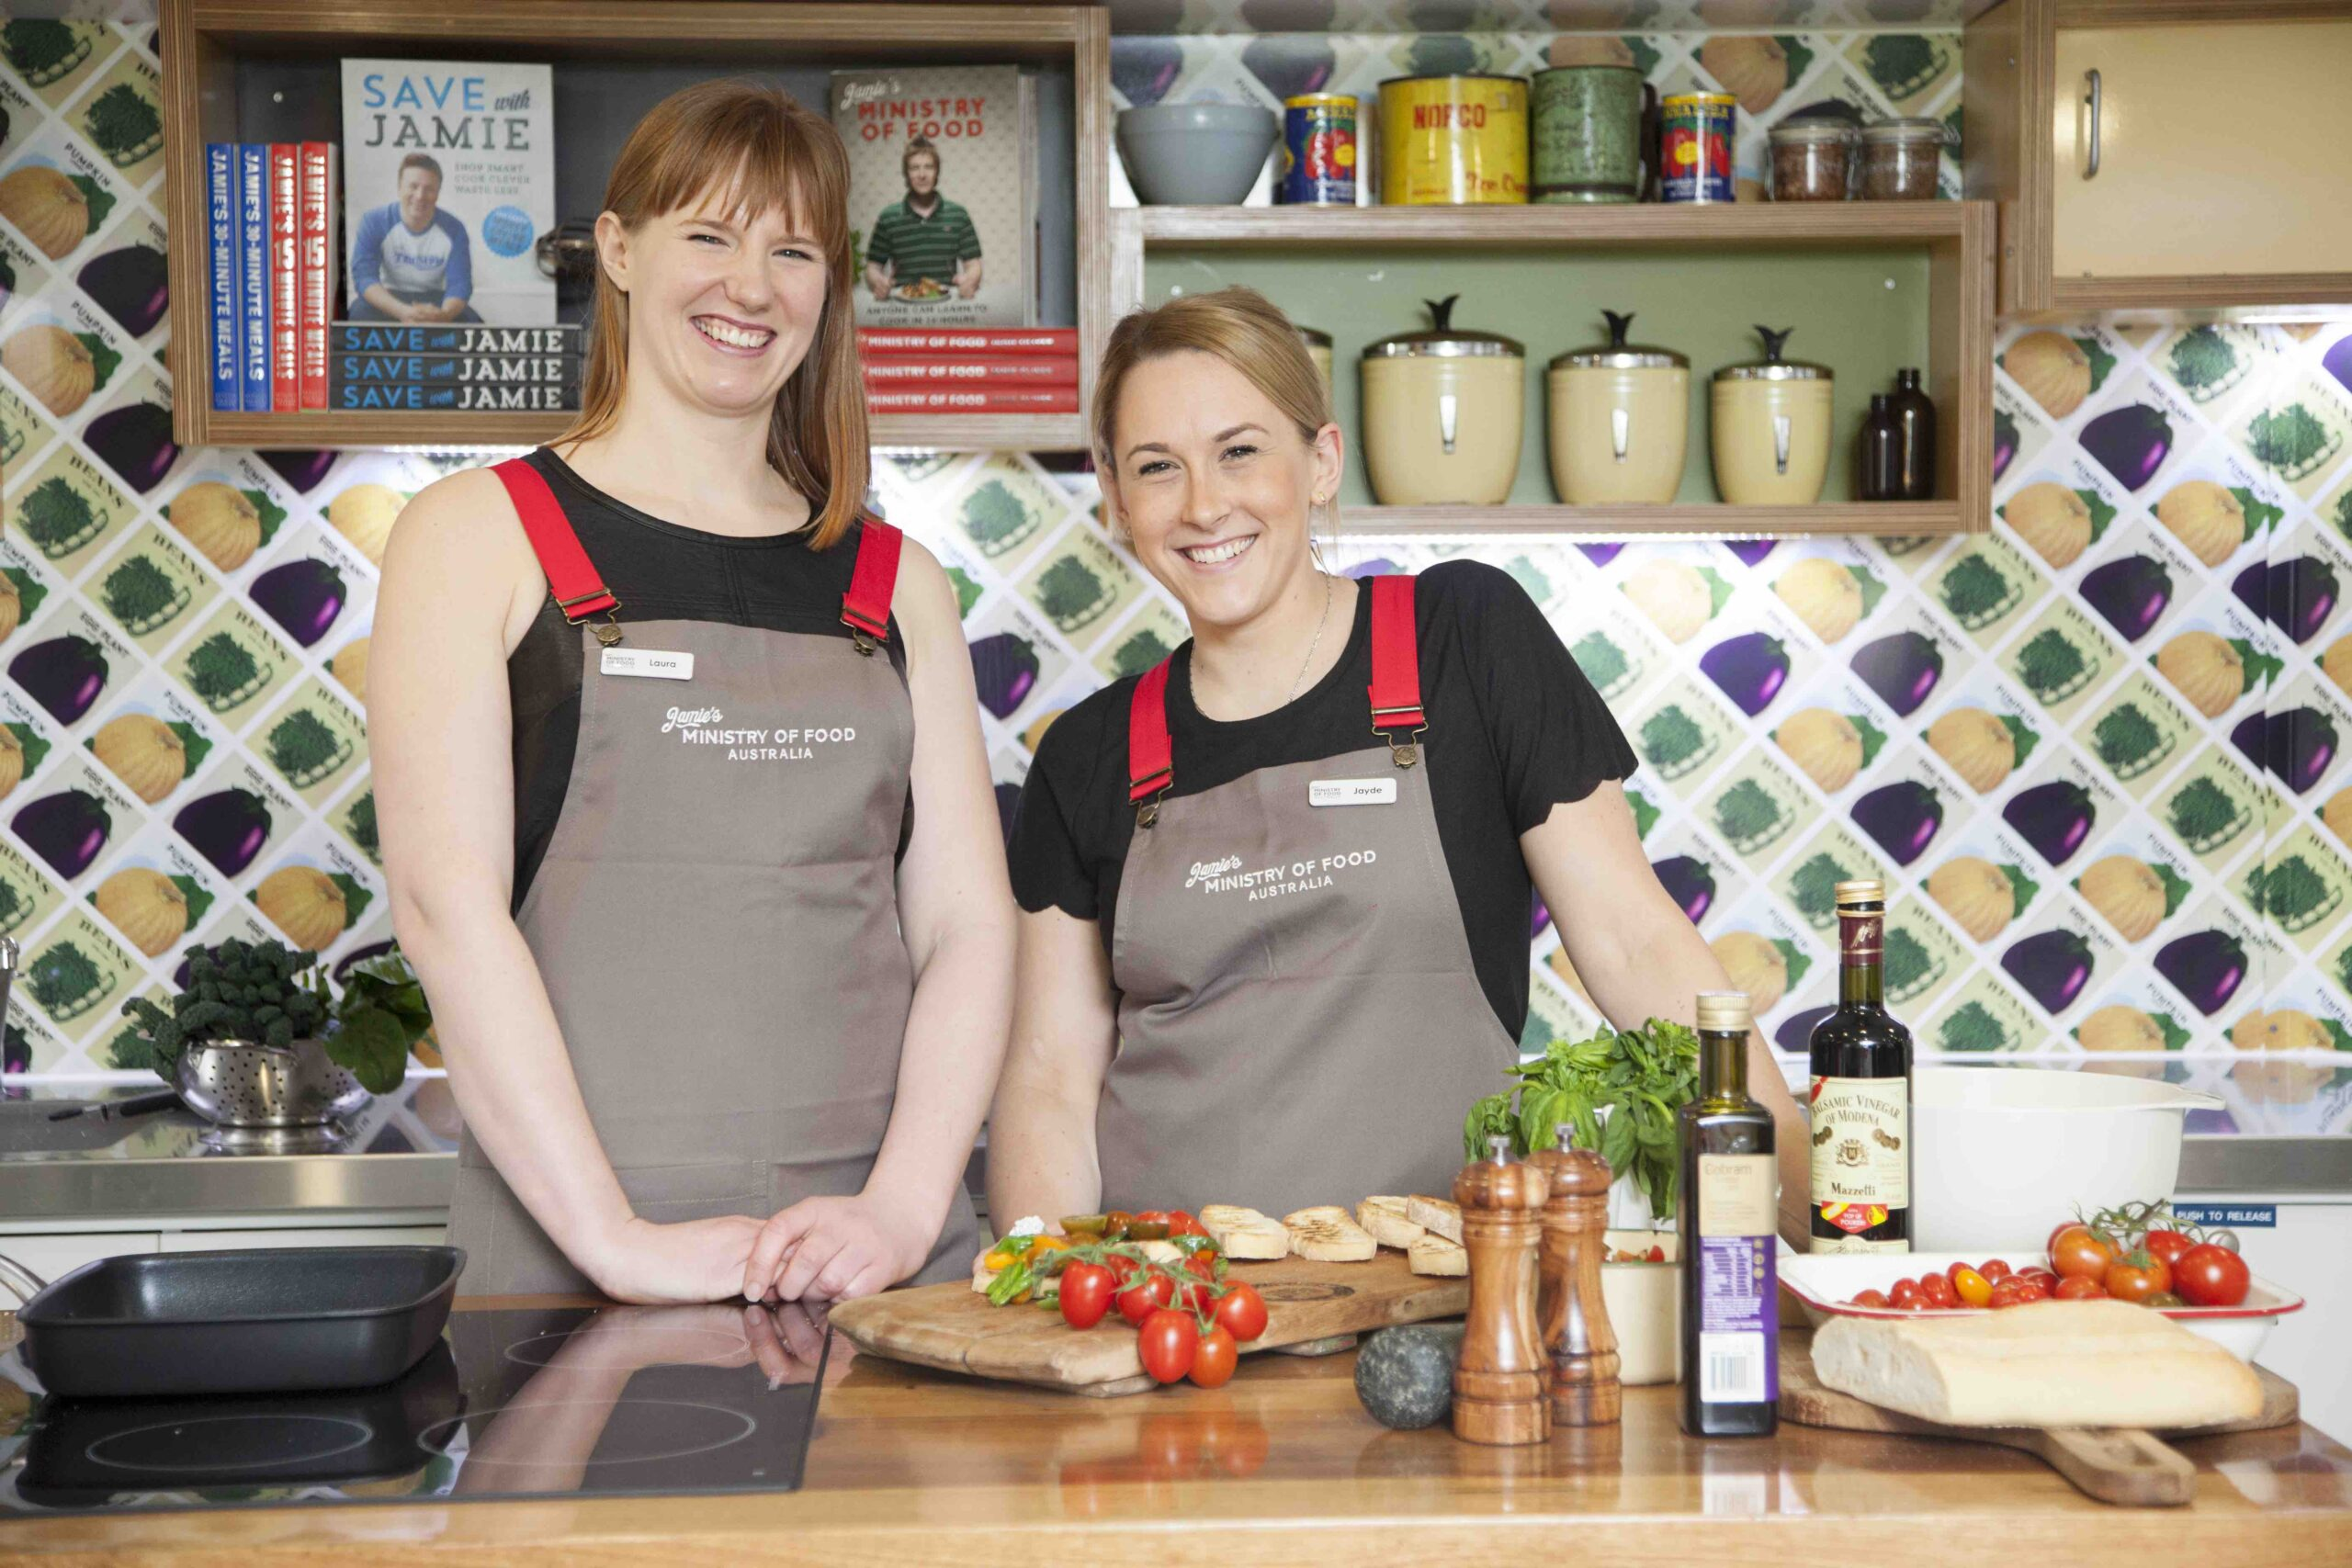 Jamie's Ministry of Food Australia has online cooking classes running all over Australia these school holidays!